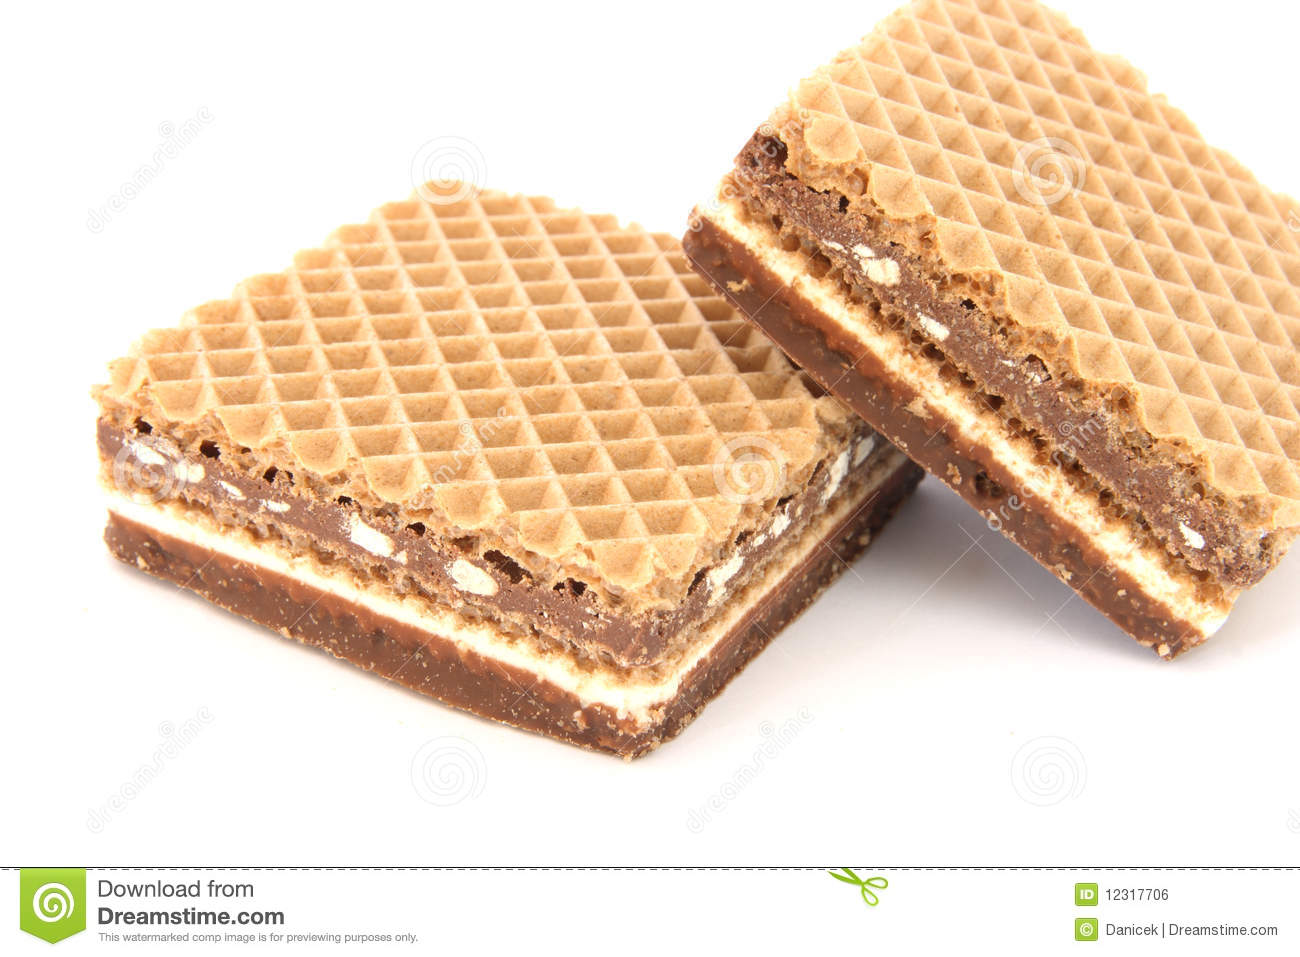 Filled Wafer With Chocolate Royalty Free Stock Image - Image: 12317706